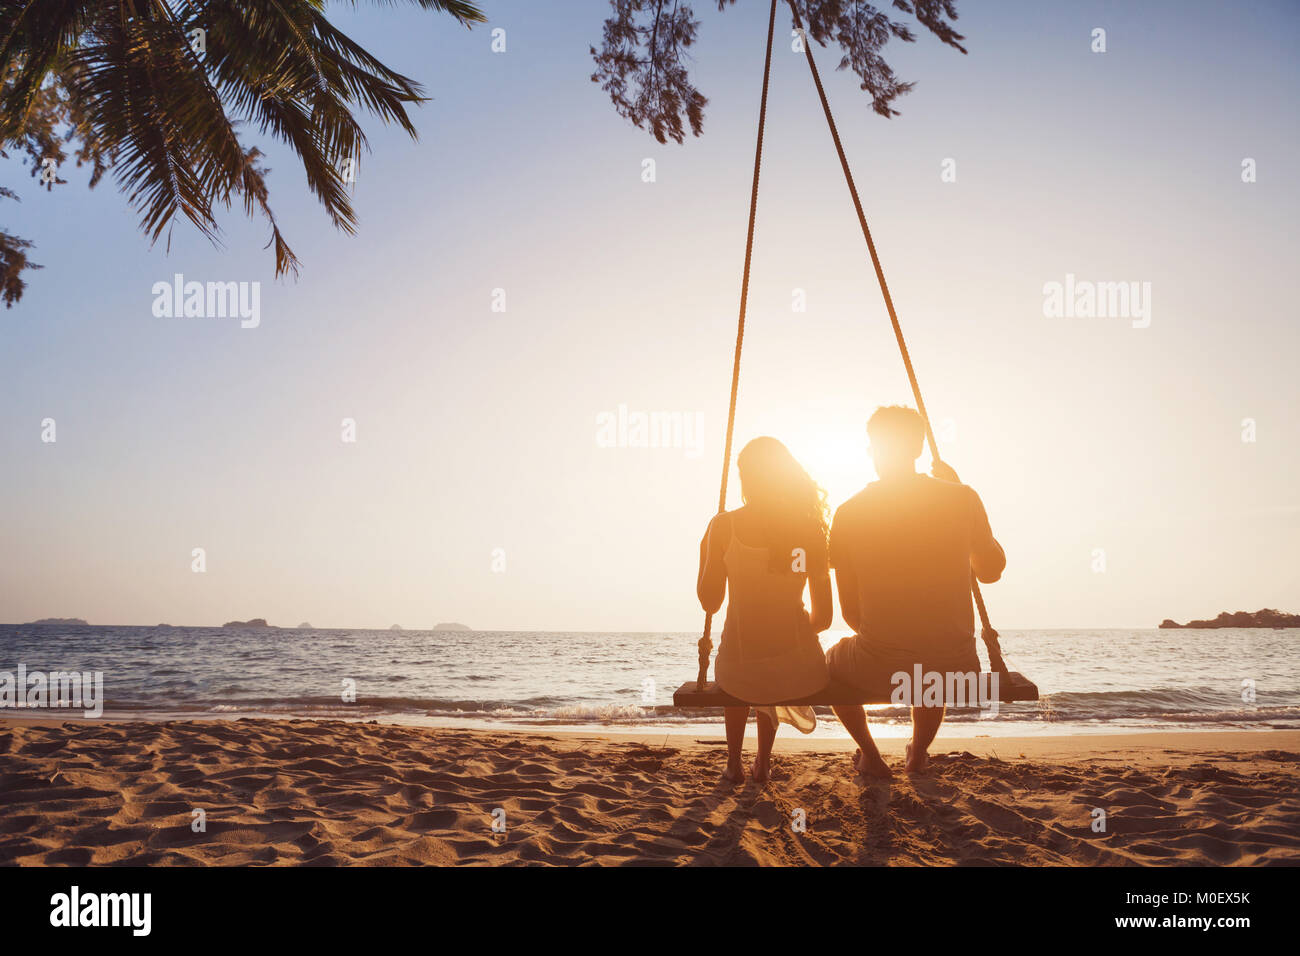 romantic couple in love sitting together on rope swing at sunset beach, silhouettes of young man and woman on holidays - Stock Image